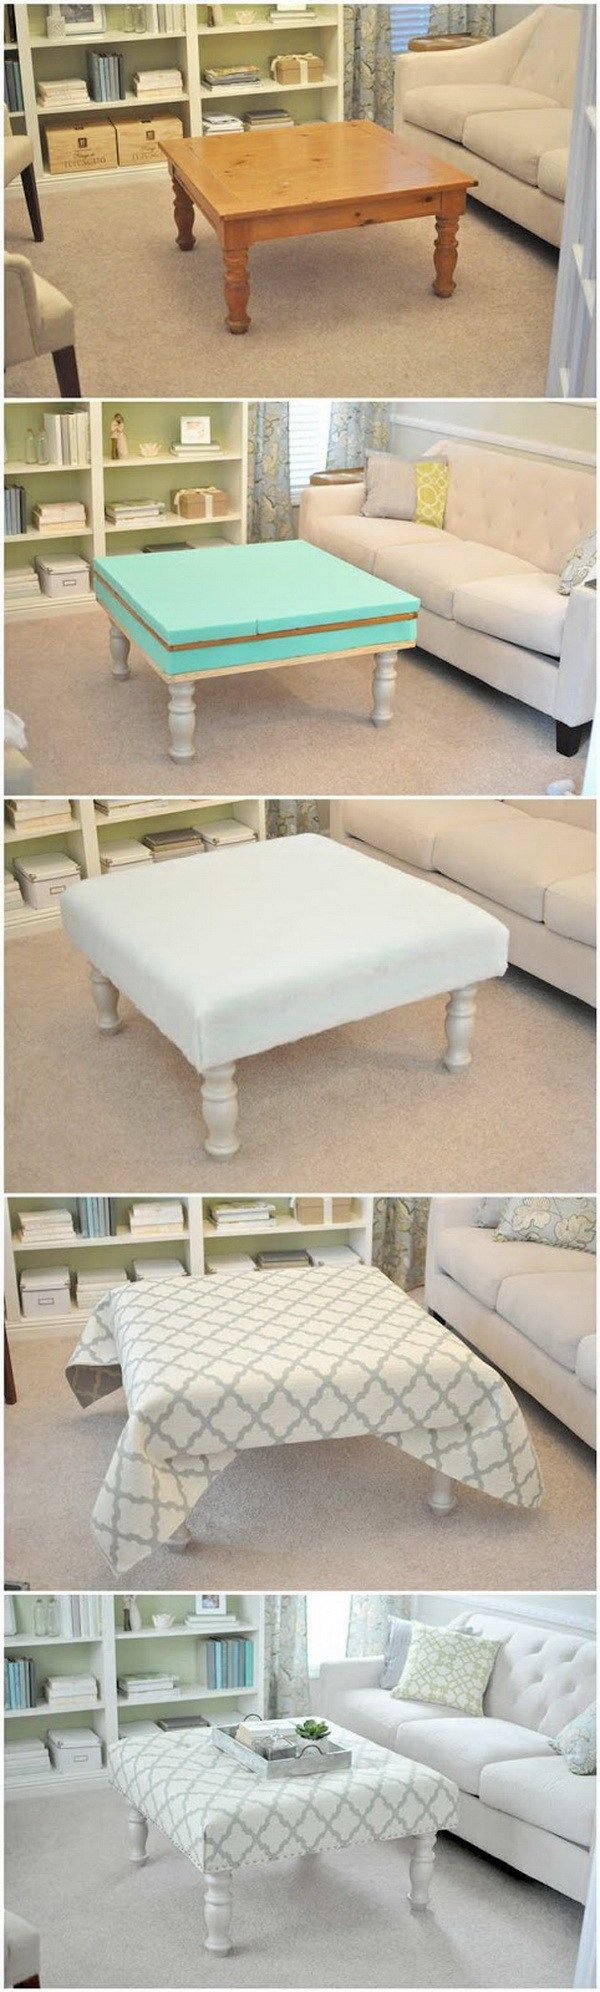 Diy Upholstered Coffee Table Ottoman This Looks So Beautiful And Awesome Adds More Comfort Style To Your Living